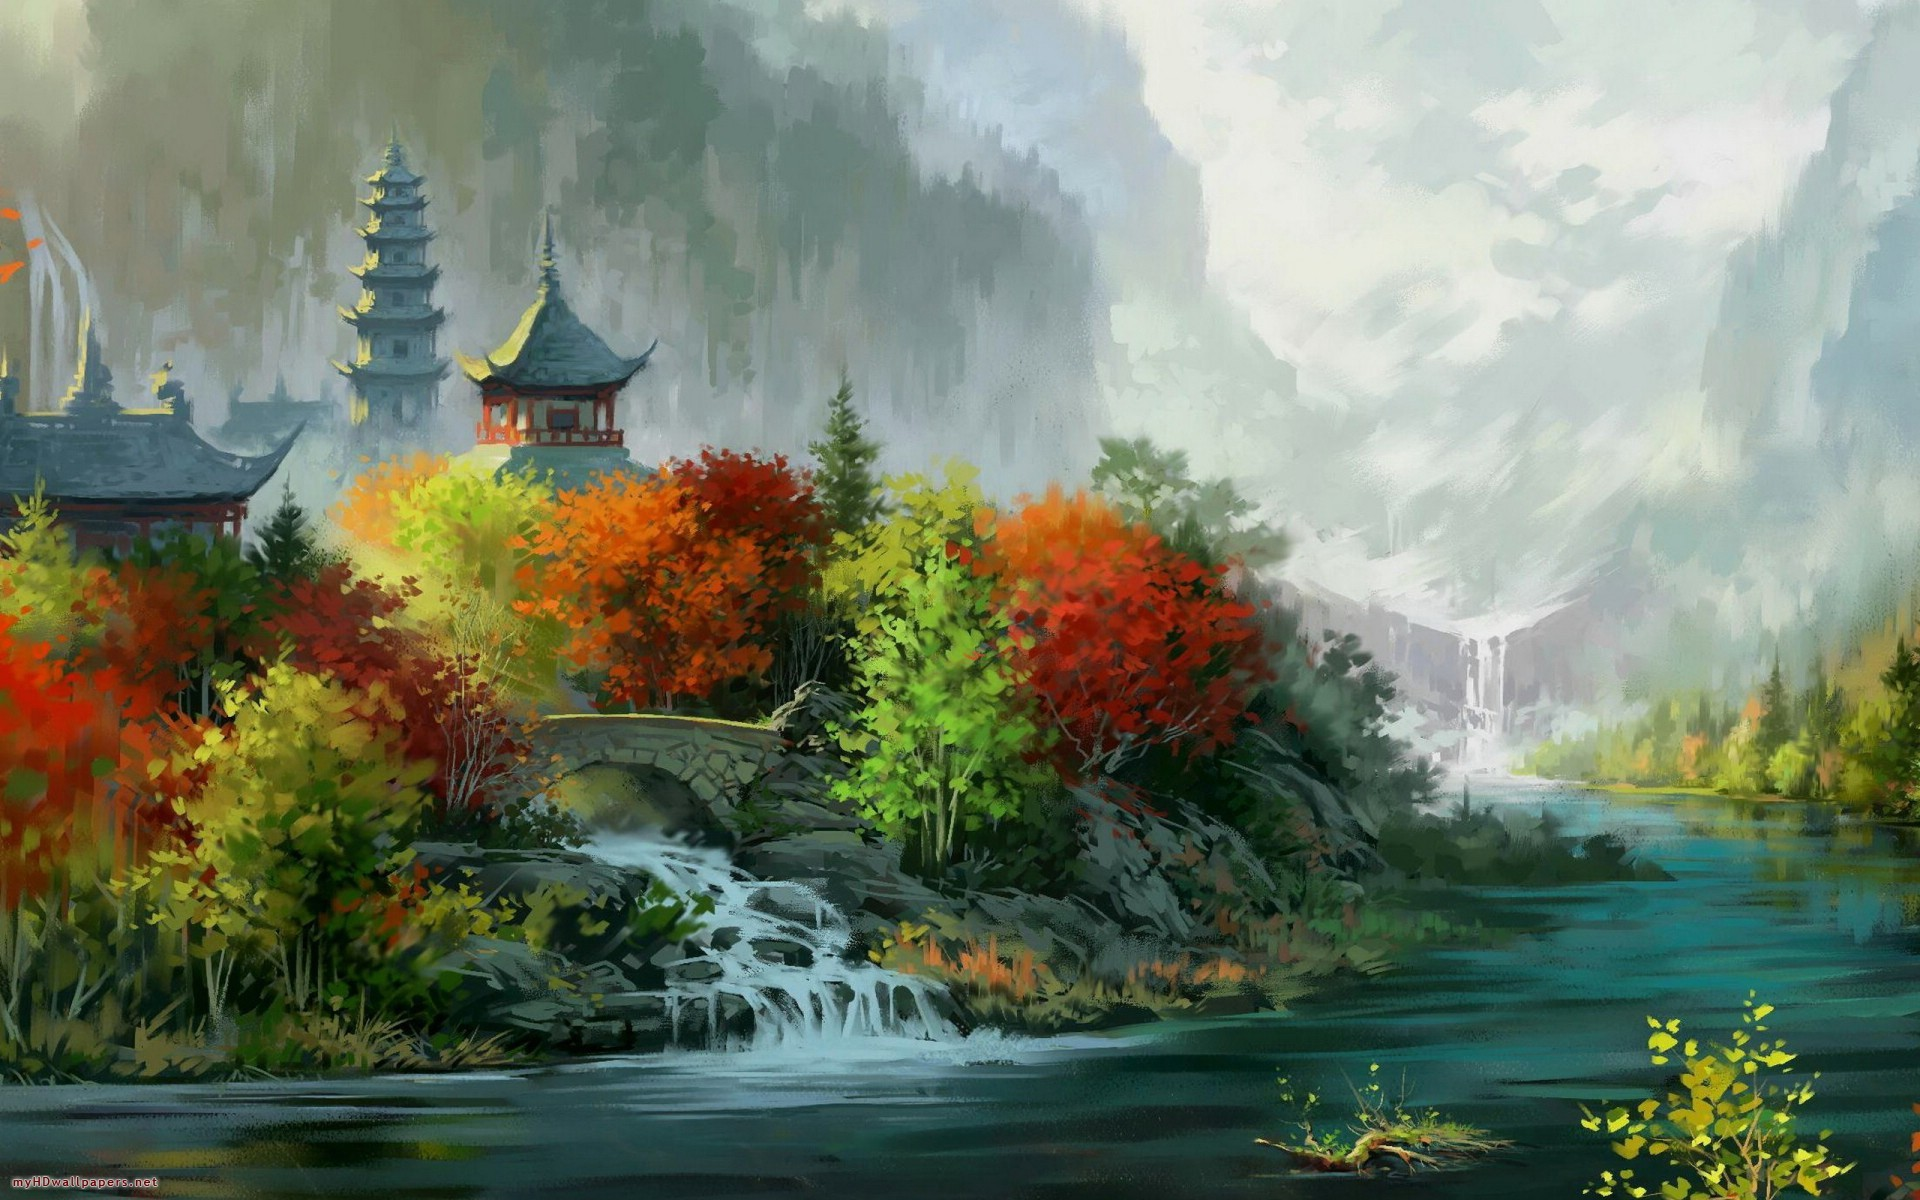 Chinese Wallpapers For Desktop 55 Images